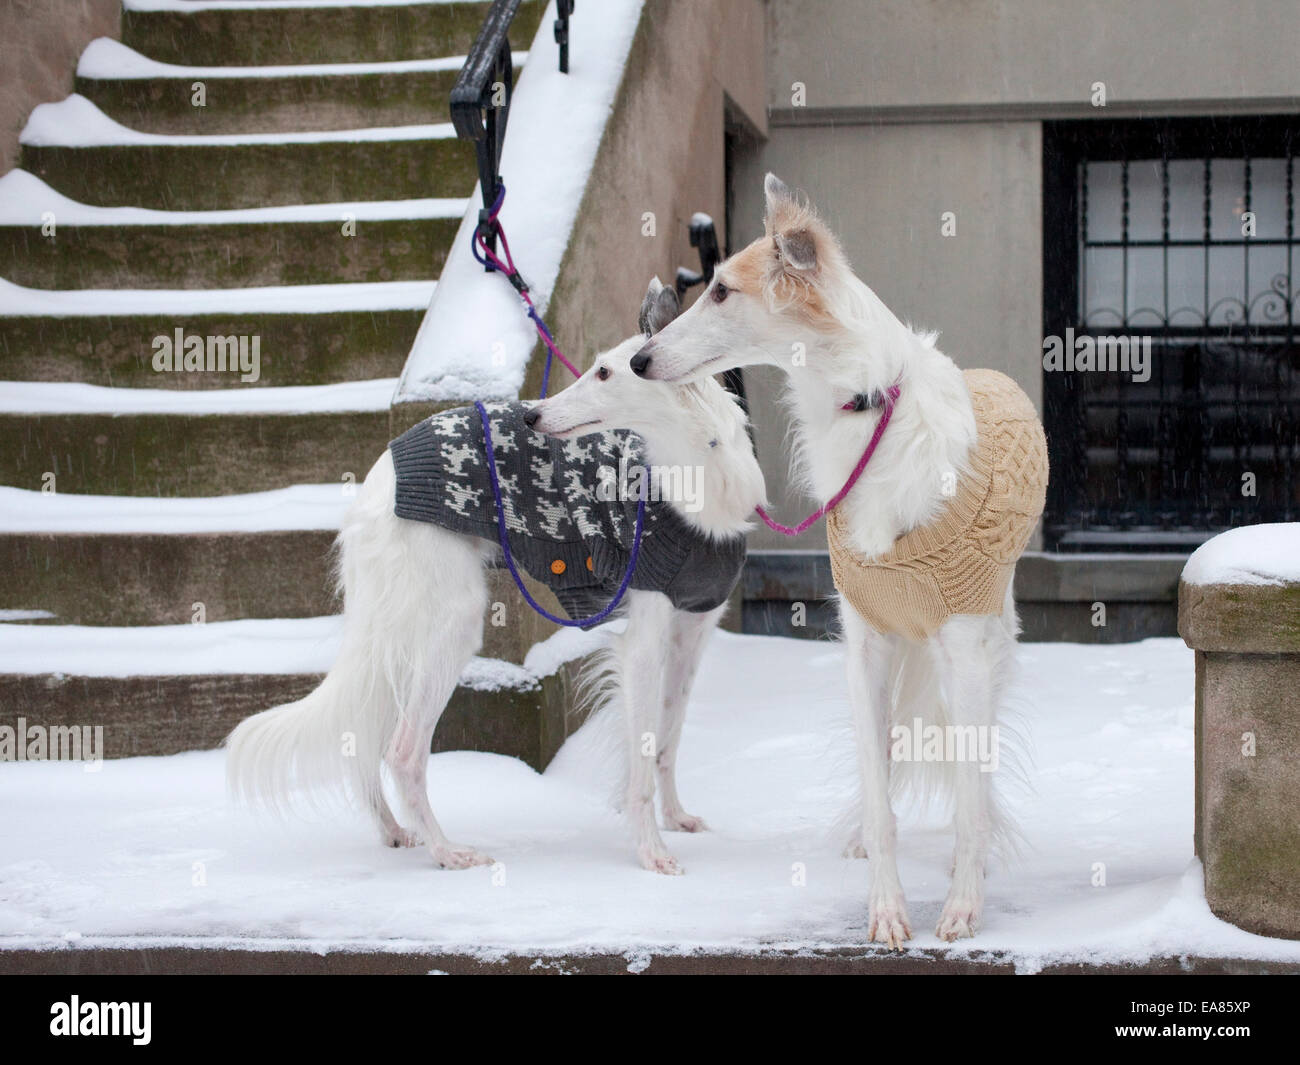 Dogs with leashes and sweaters on in snow - Stock Image